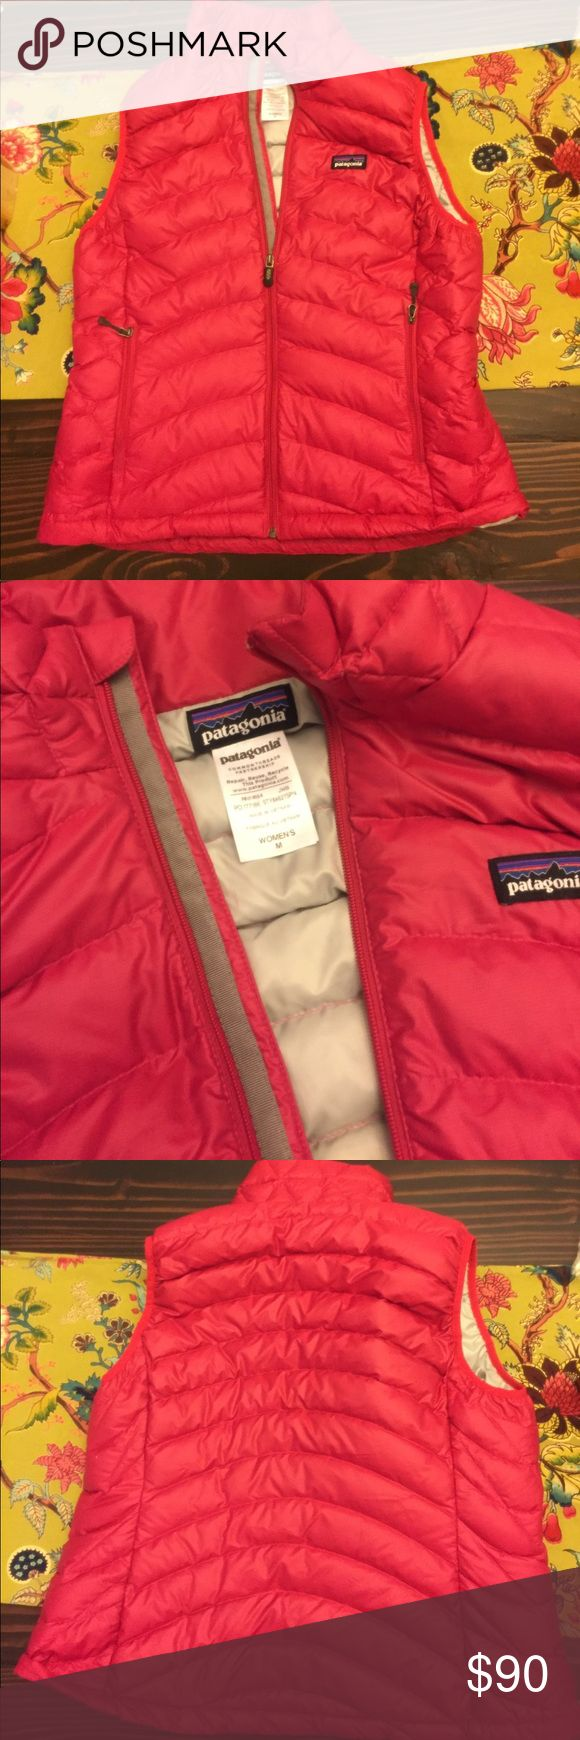 Patagonia Down Sweater Vest Practically new Patagonia down sweater vest in a lovely dark pink color. This vest is in excellent condition. Patagonia Jackets & Coats Vests